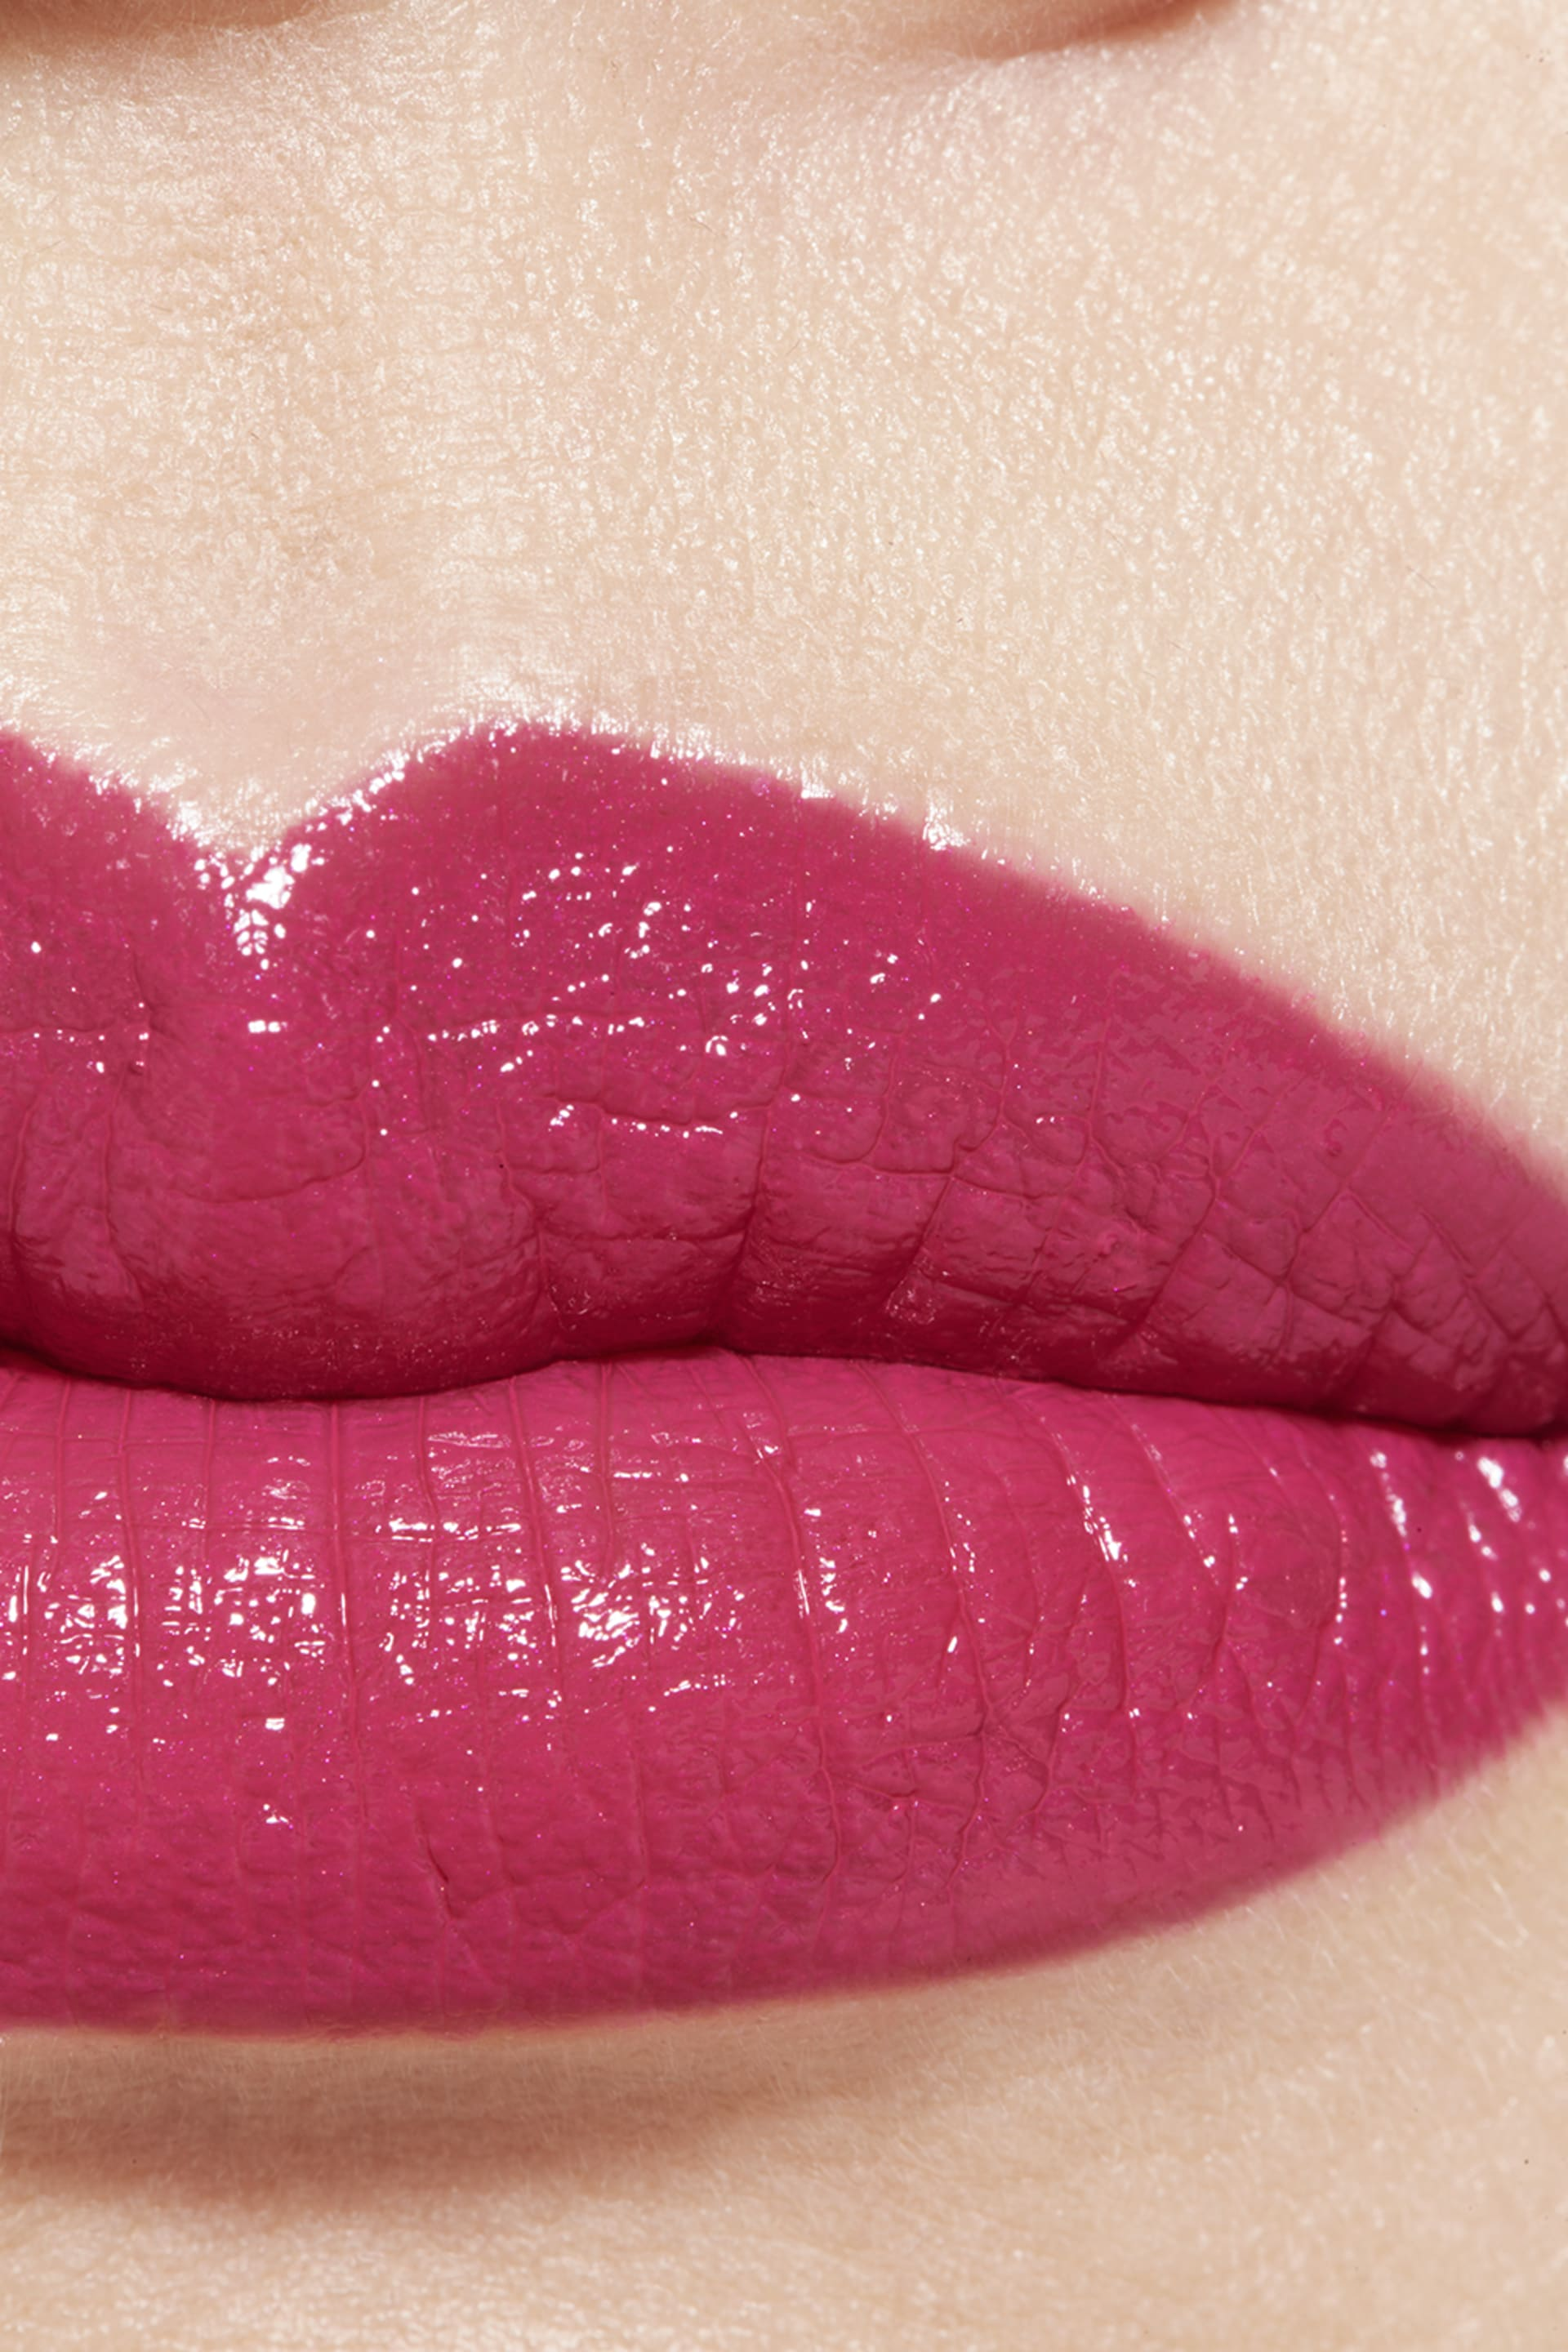 Application makeup visual 1 - ROUGE COCO 482 - ROSE MALICIEUX